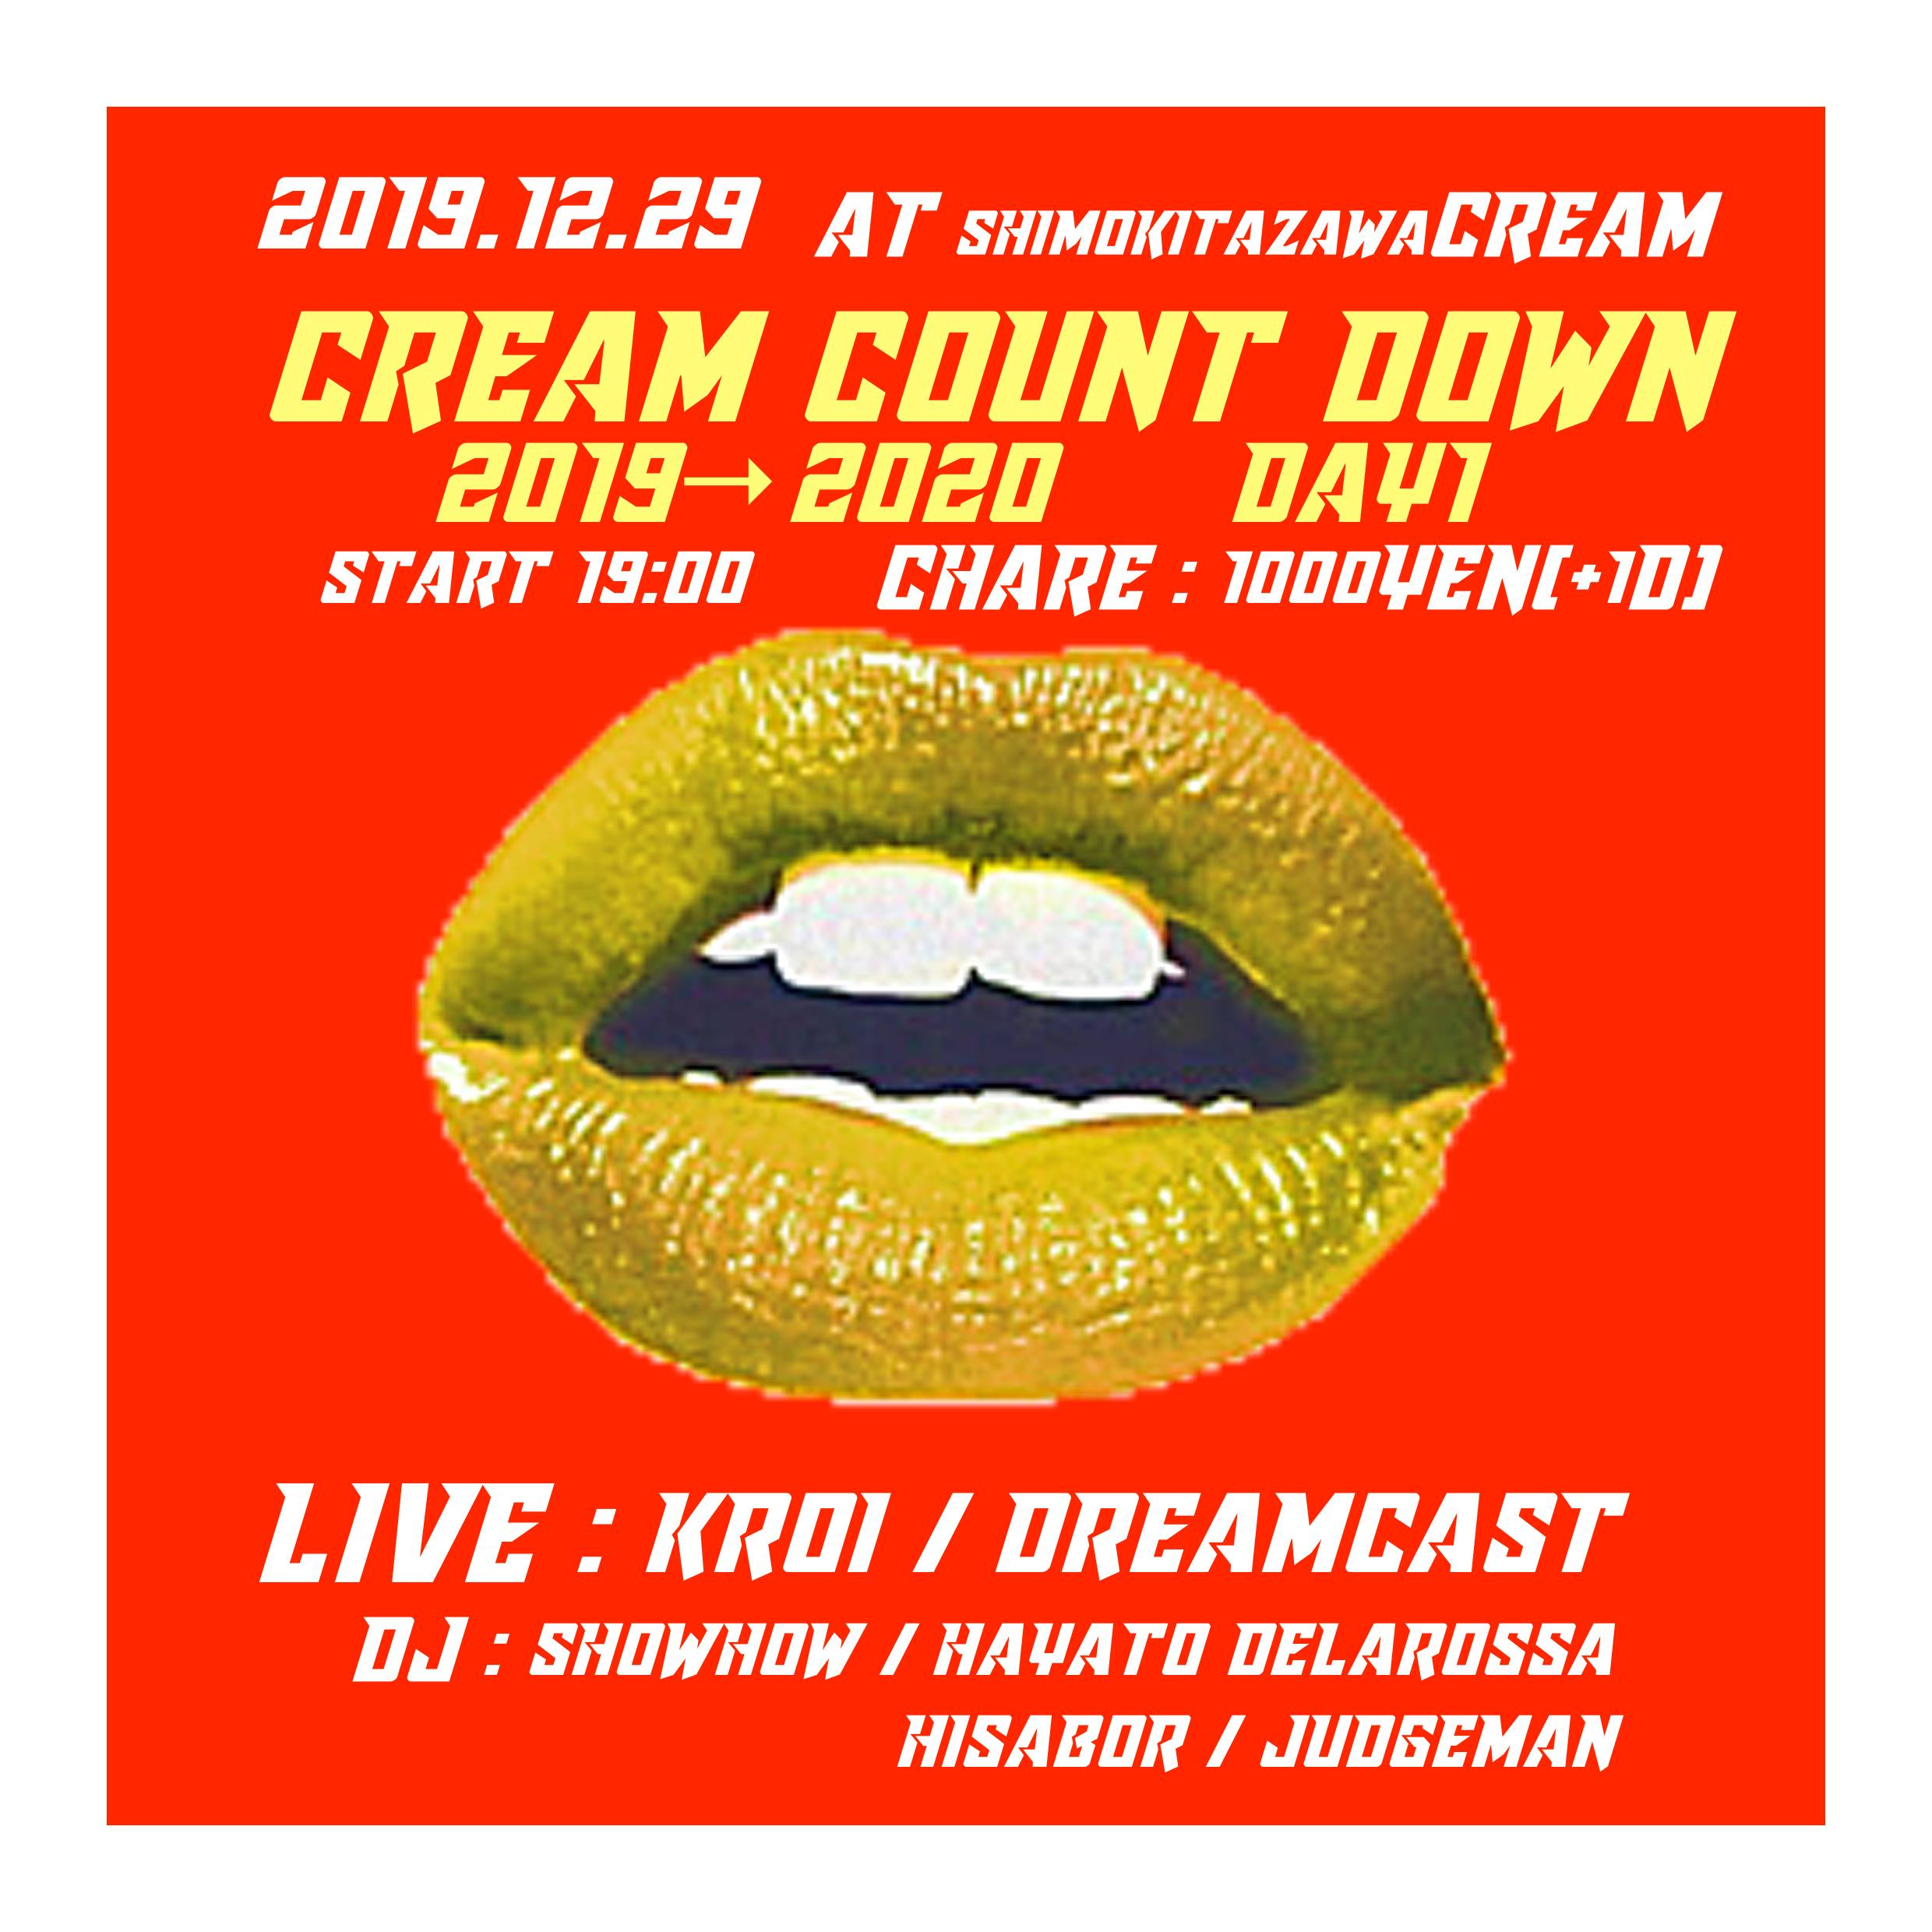 「CREAM COUNT DOWN 2019」 2019.12.29  at shimokitazawa CREAM